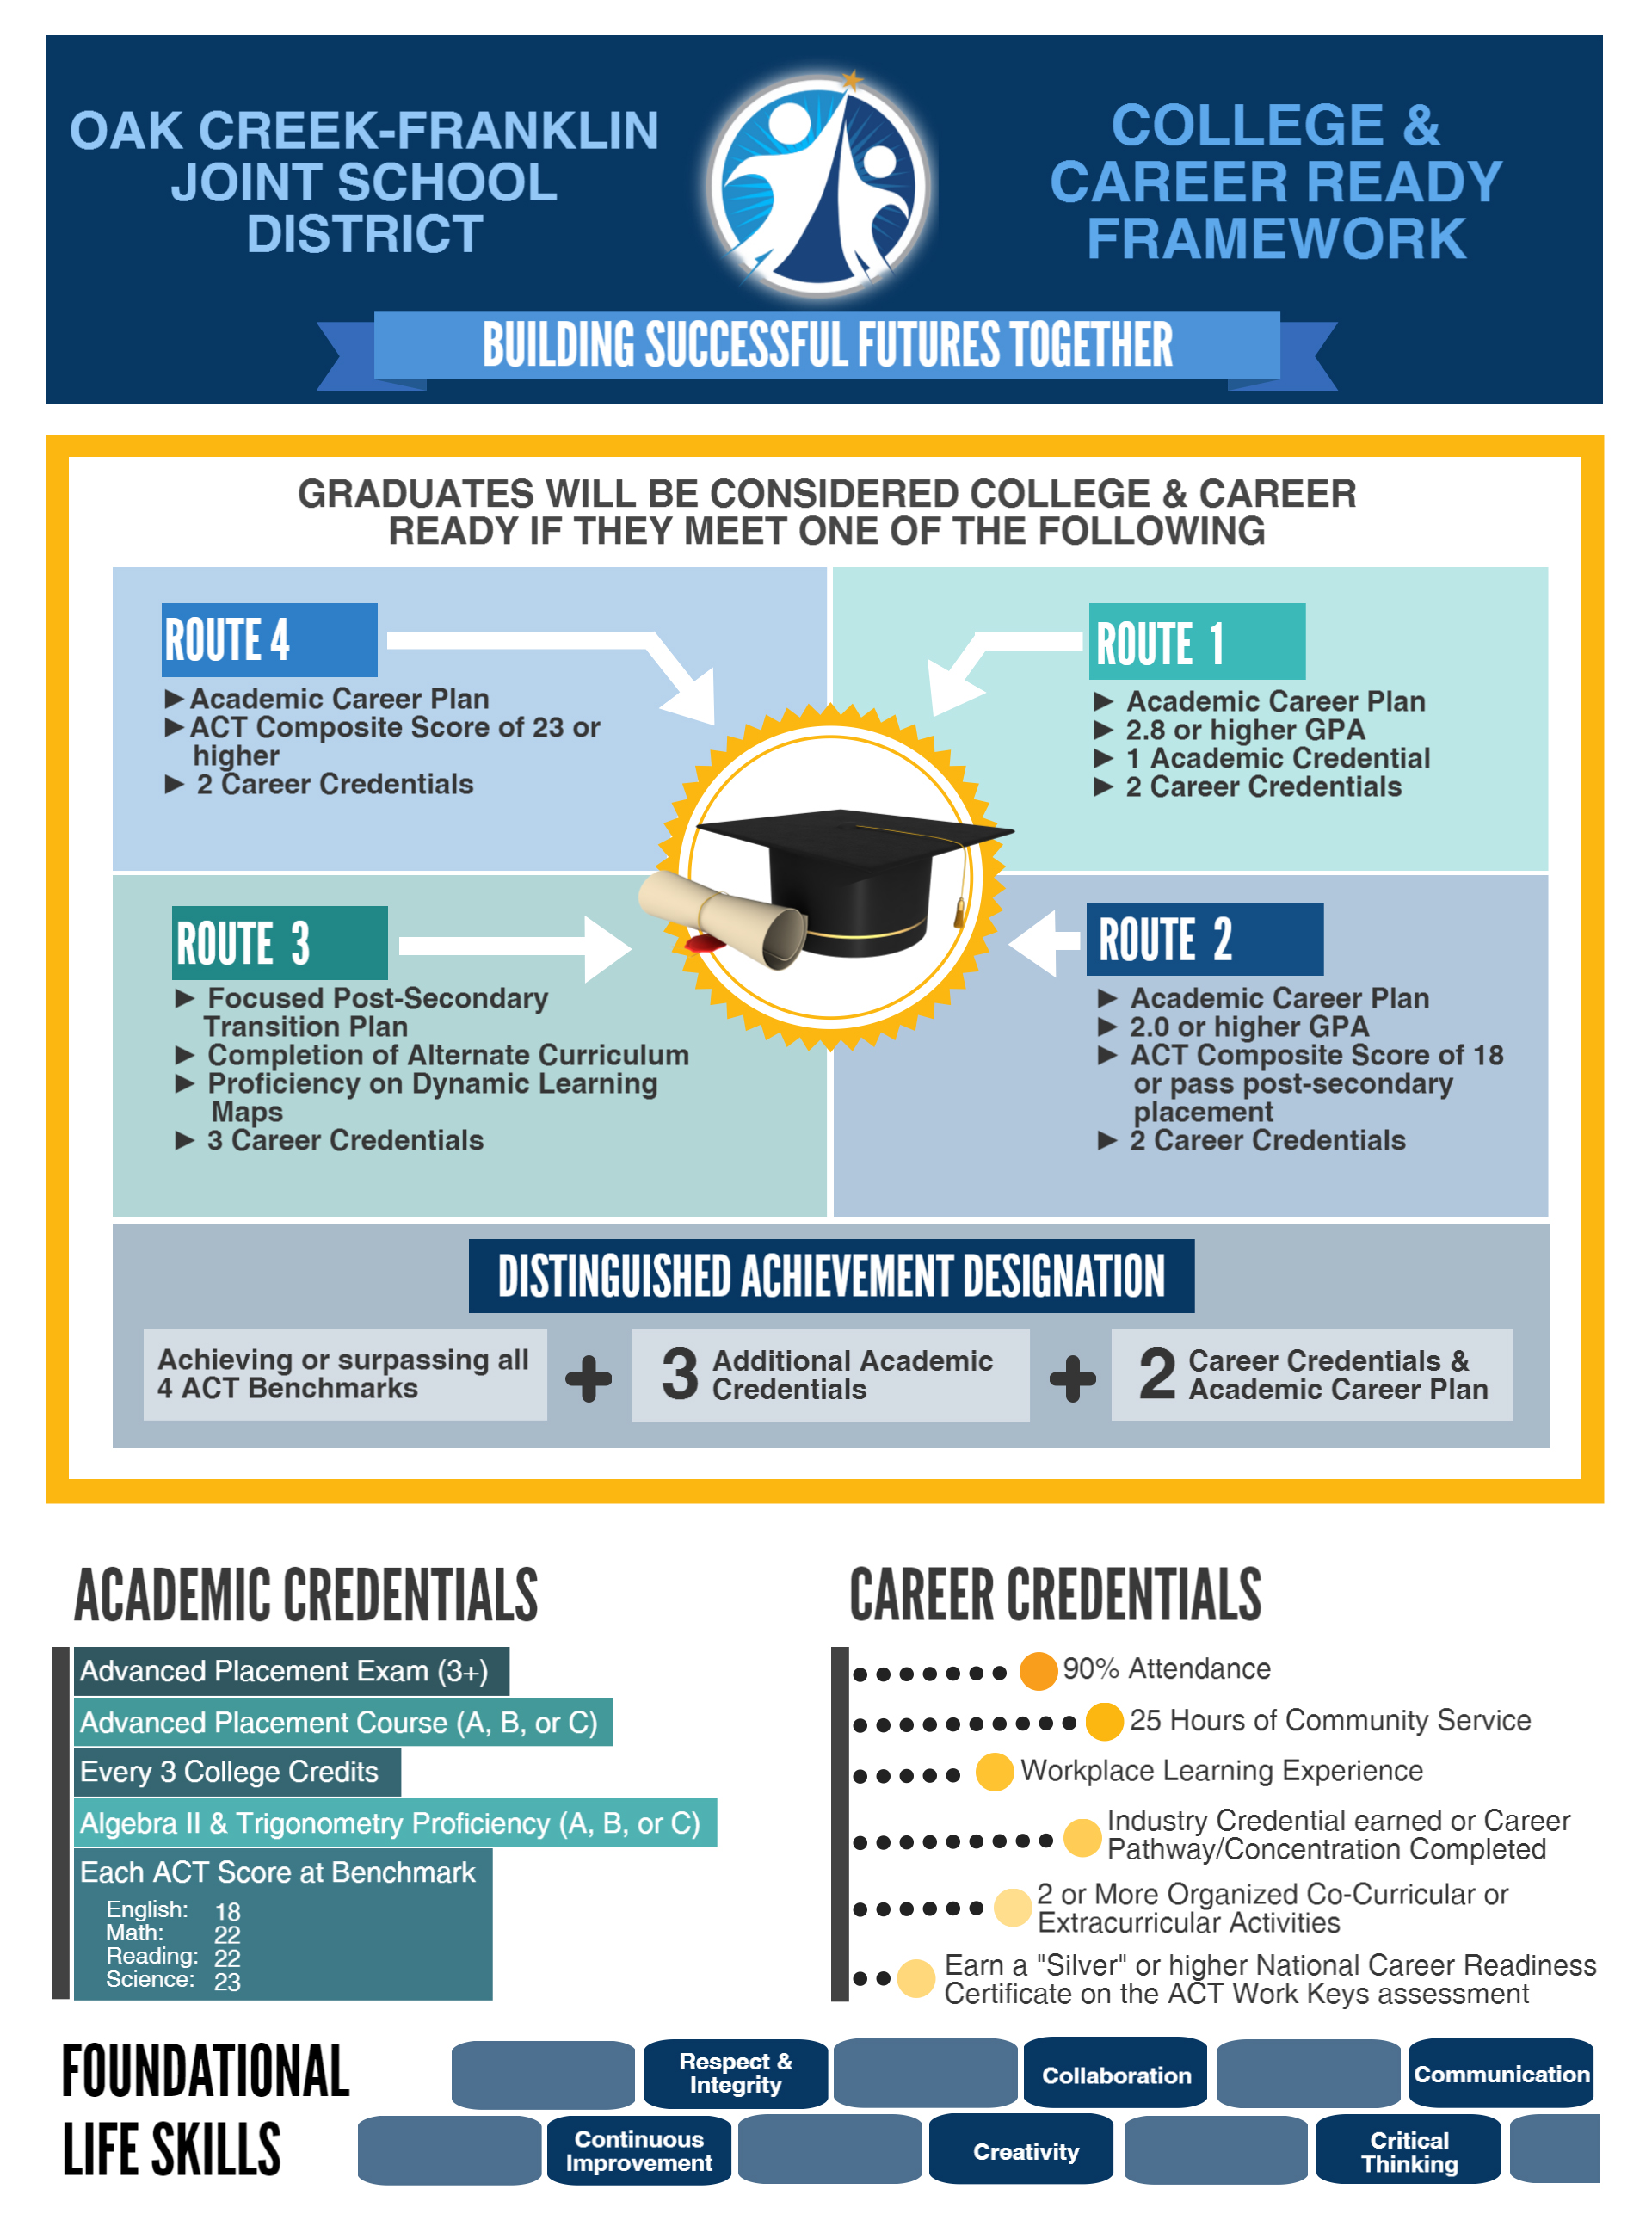 College & Career Ready Framework infographic